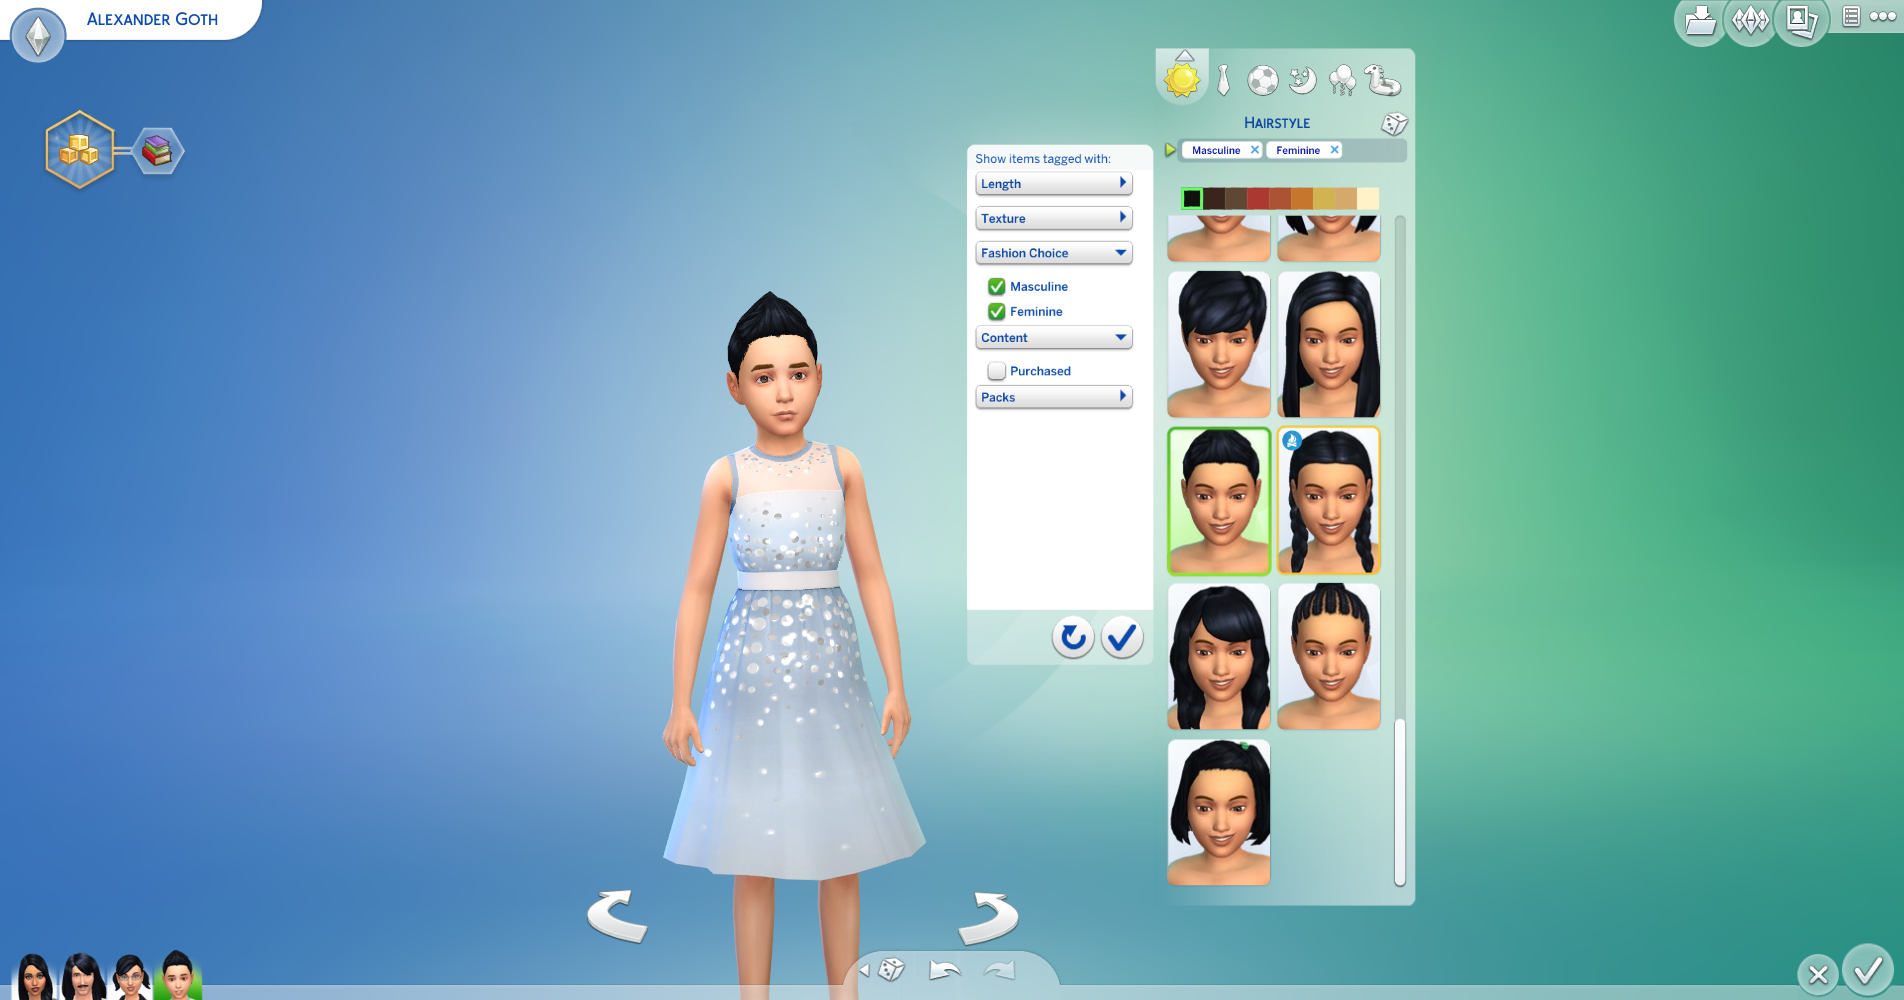 The Sims 4: Gender Customization, Same Sex Pregnancy, and